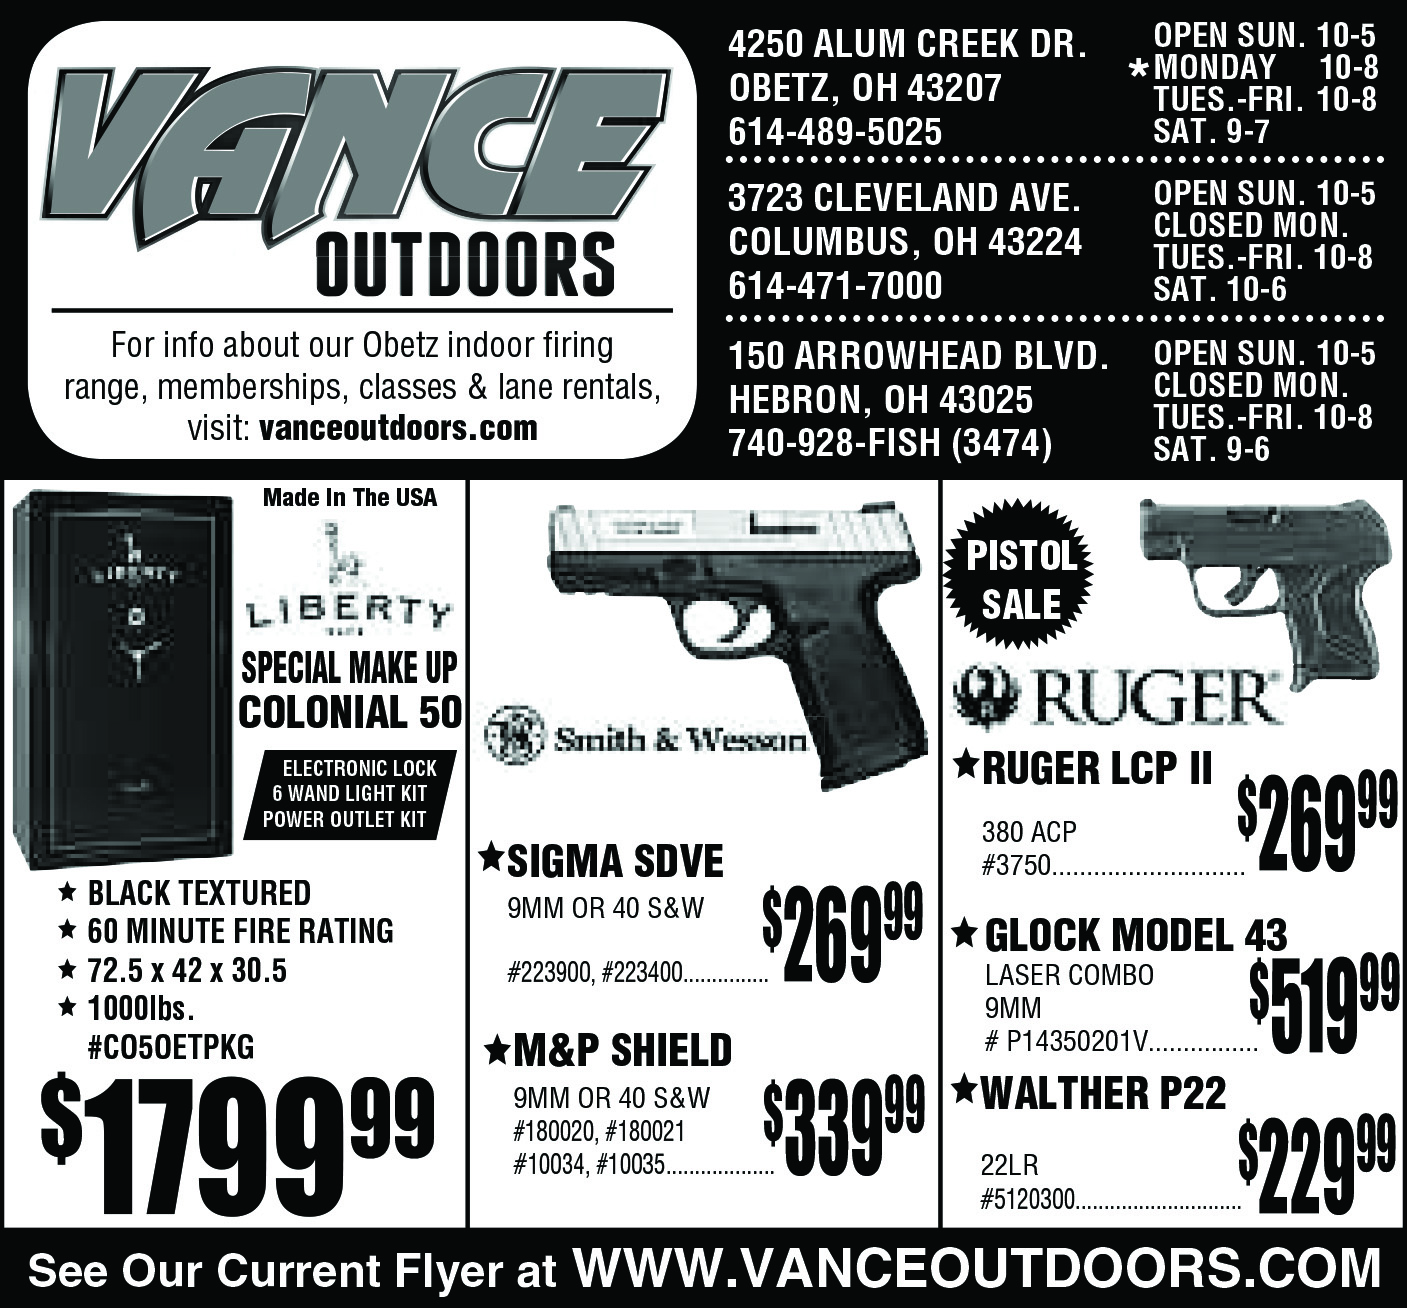 Vance's Weekly Ad Insert: Sunday, March 19, 2017